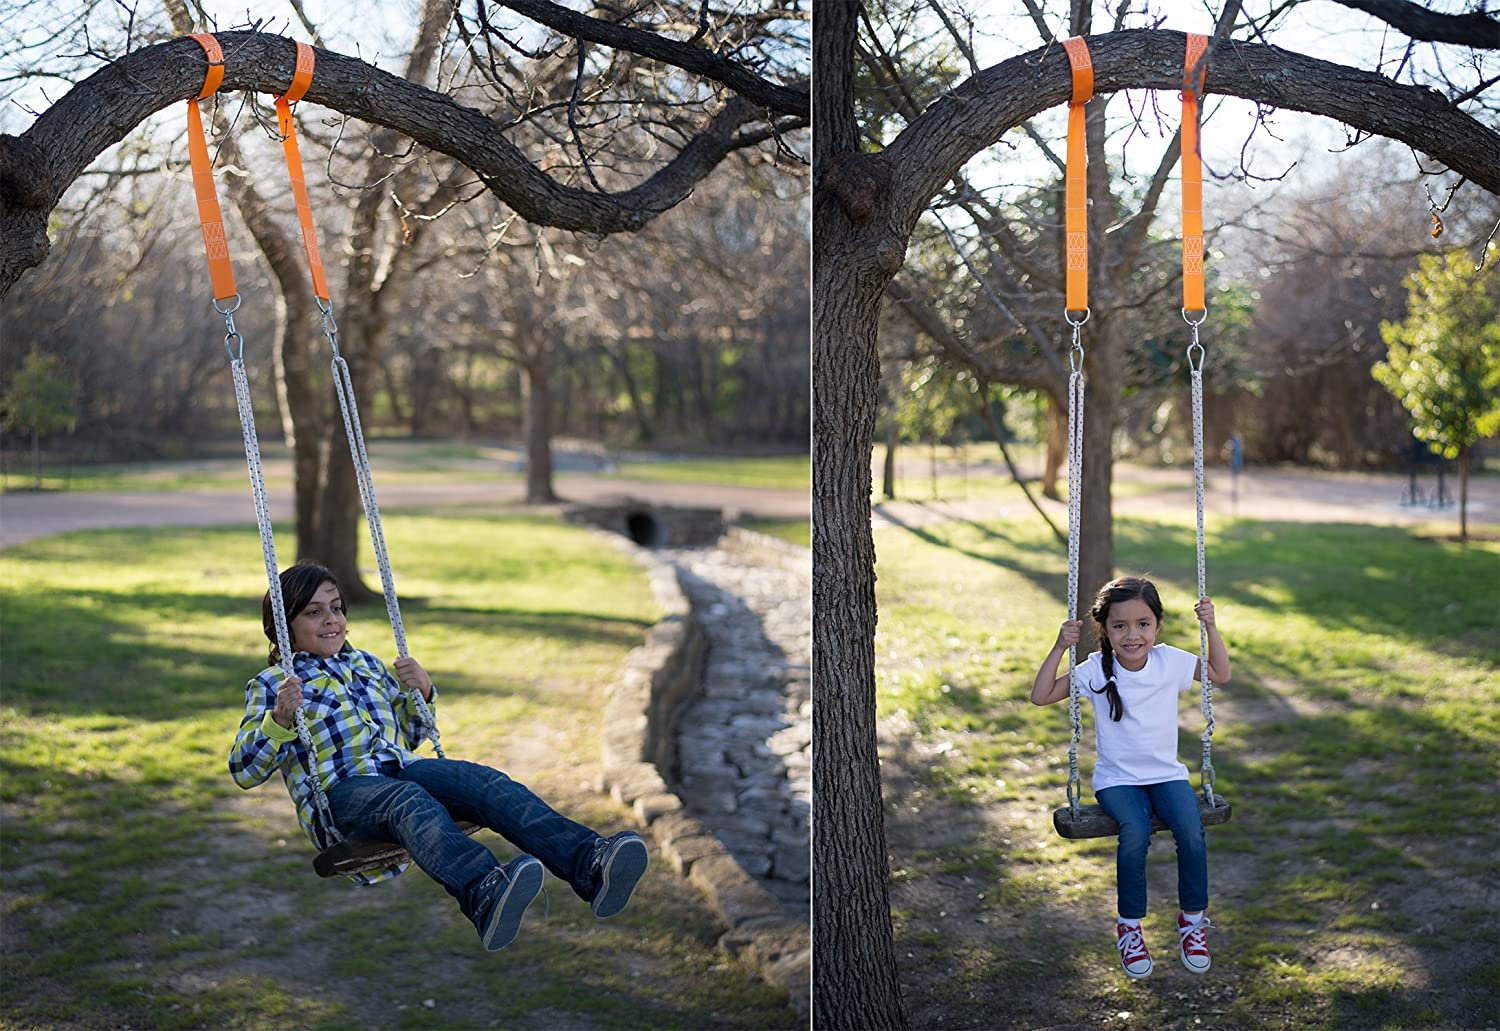 Image result for how to hang a swing from a tree without branches